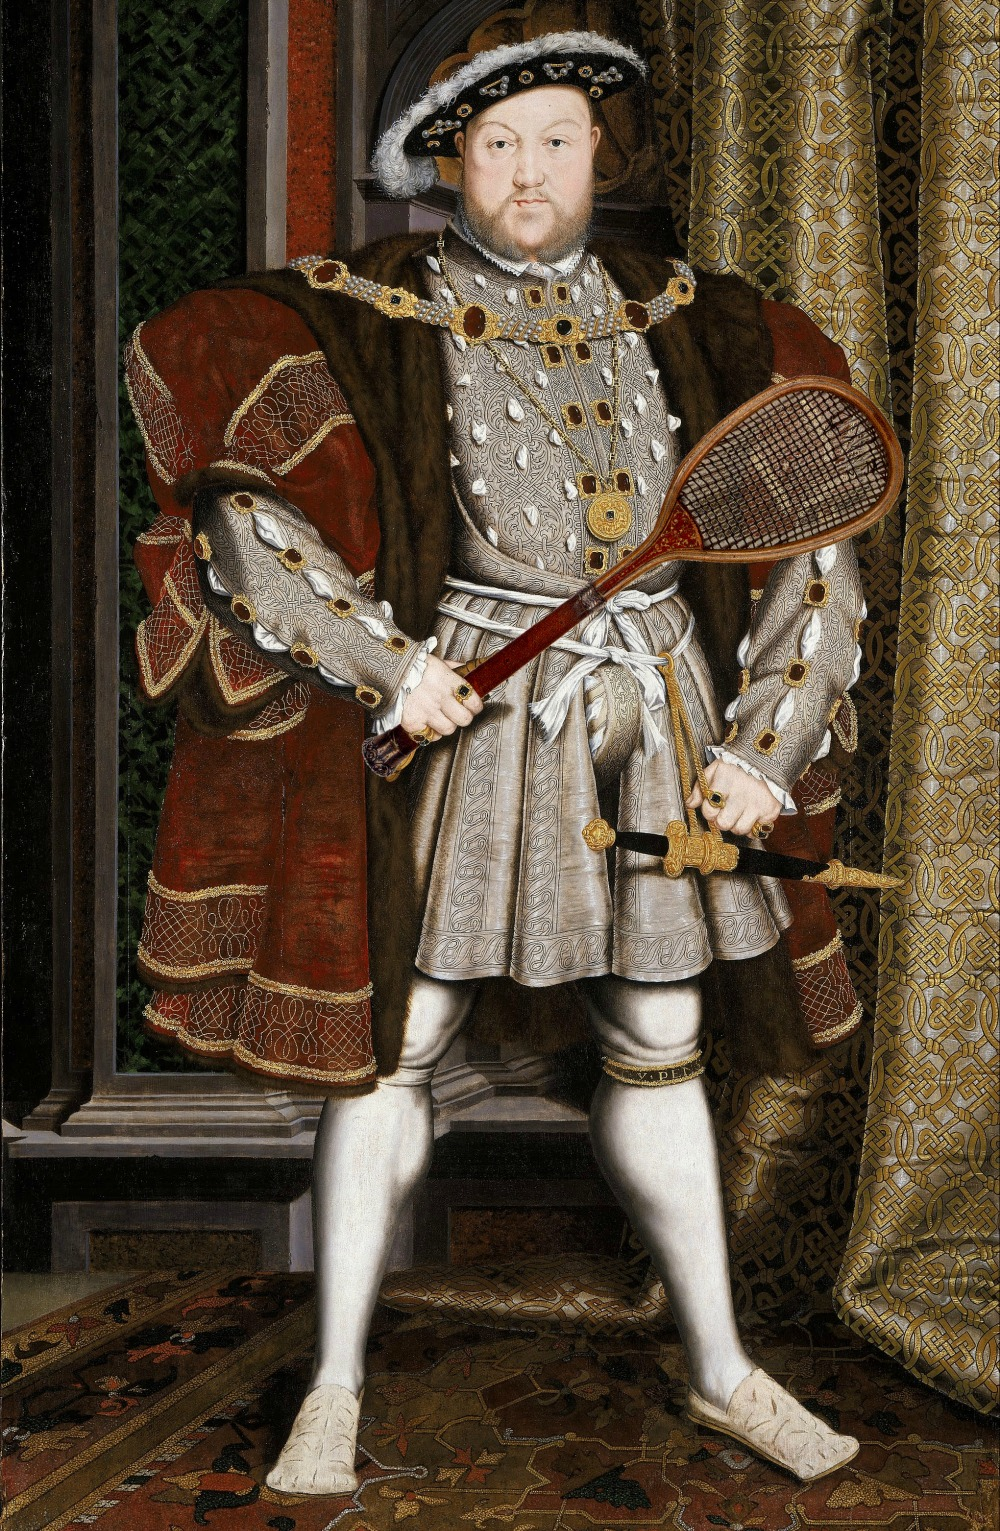 Henry VIII was a masterful tennis player